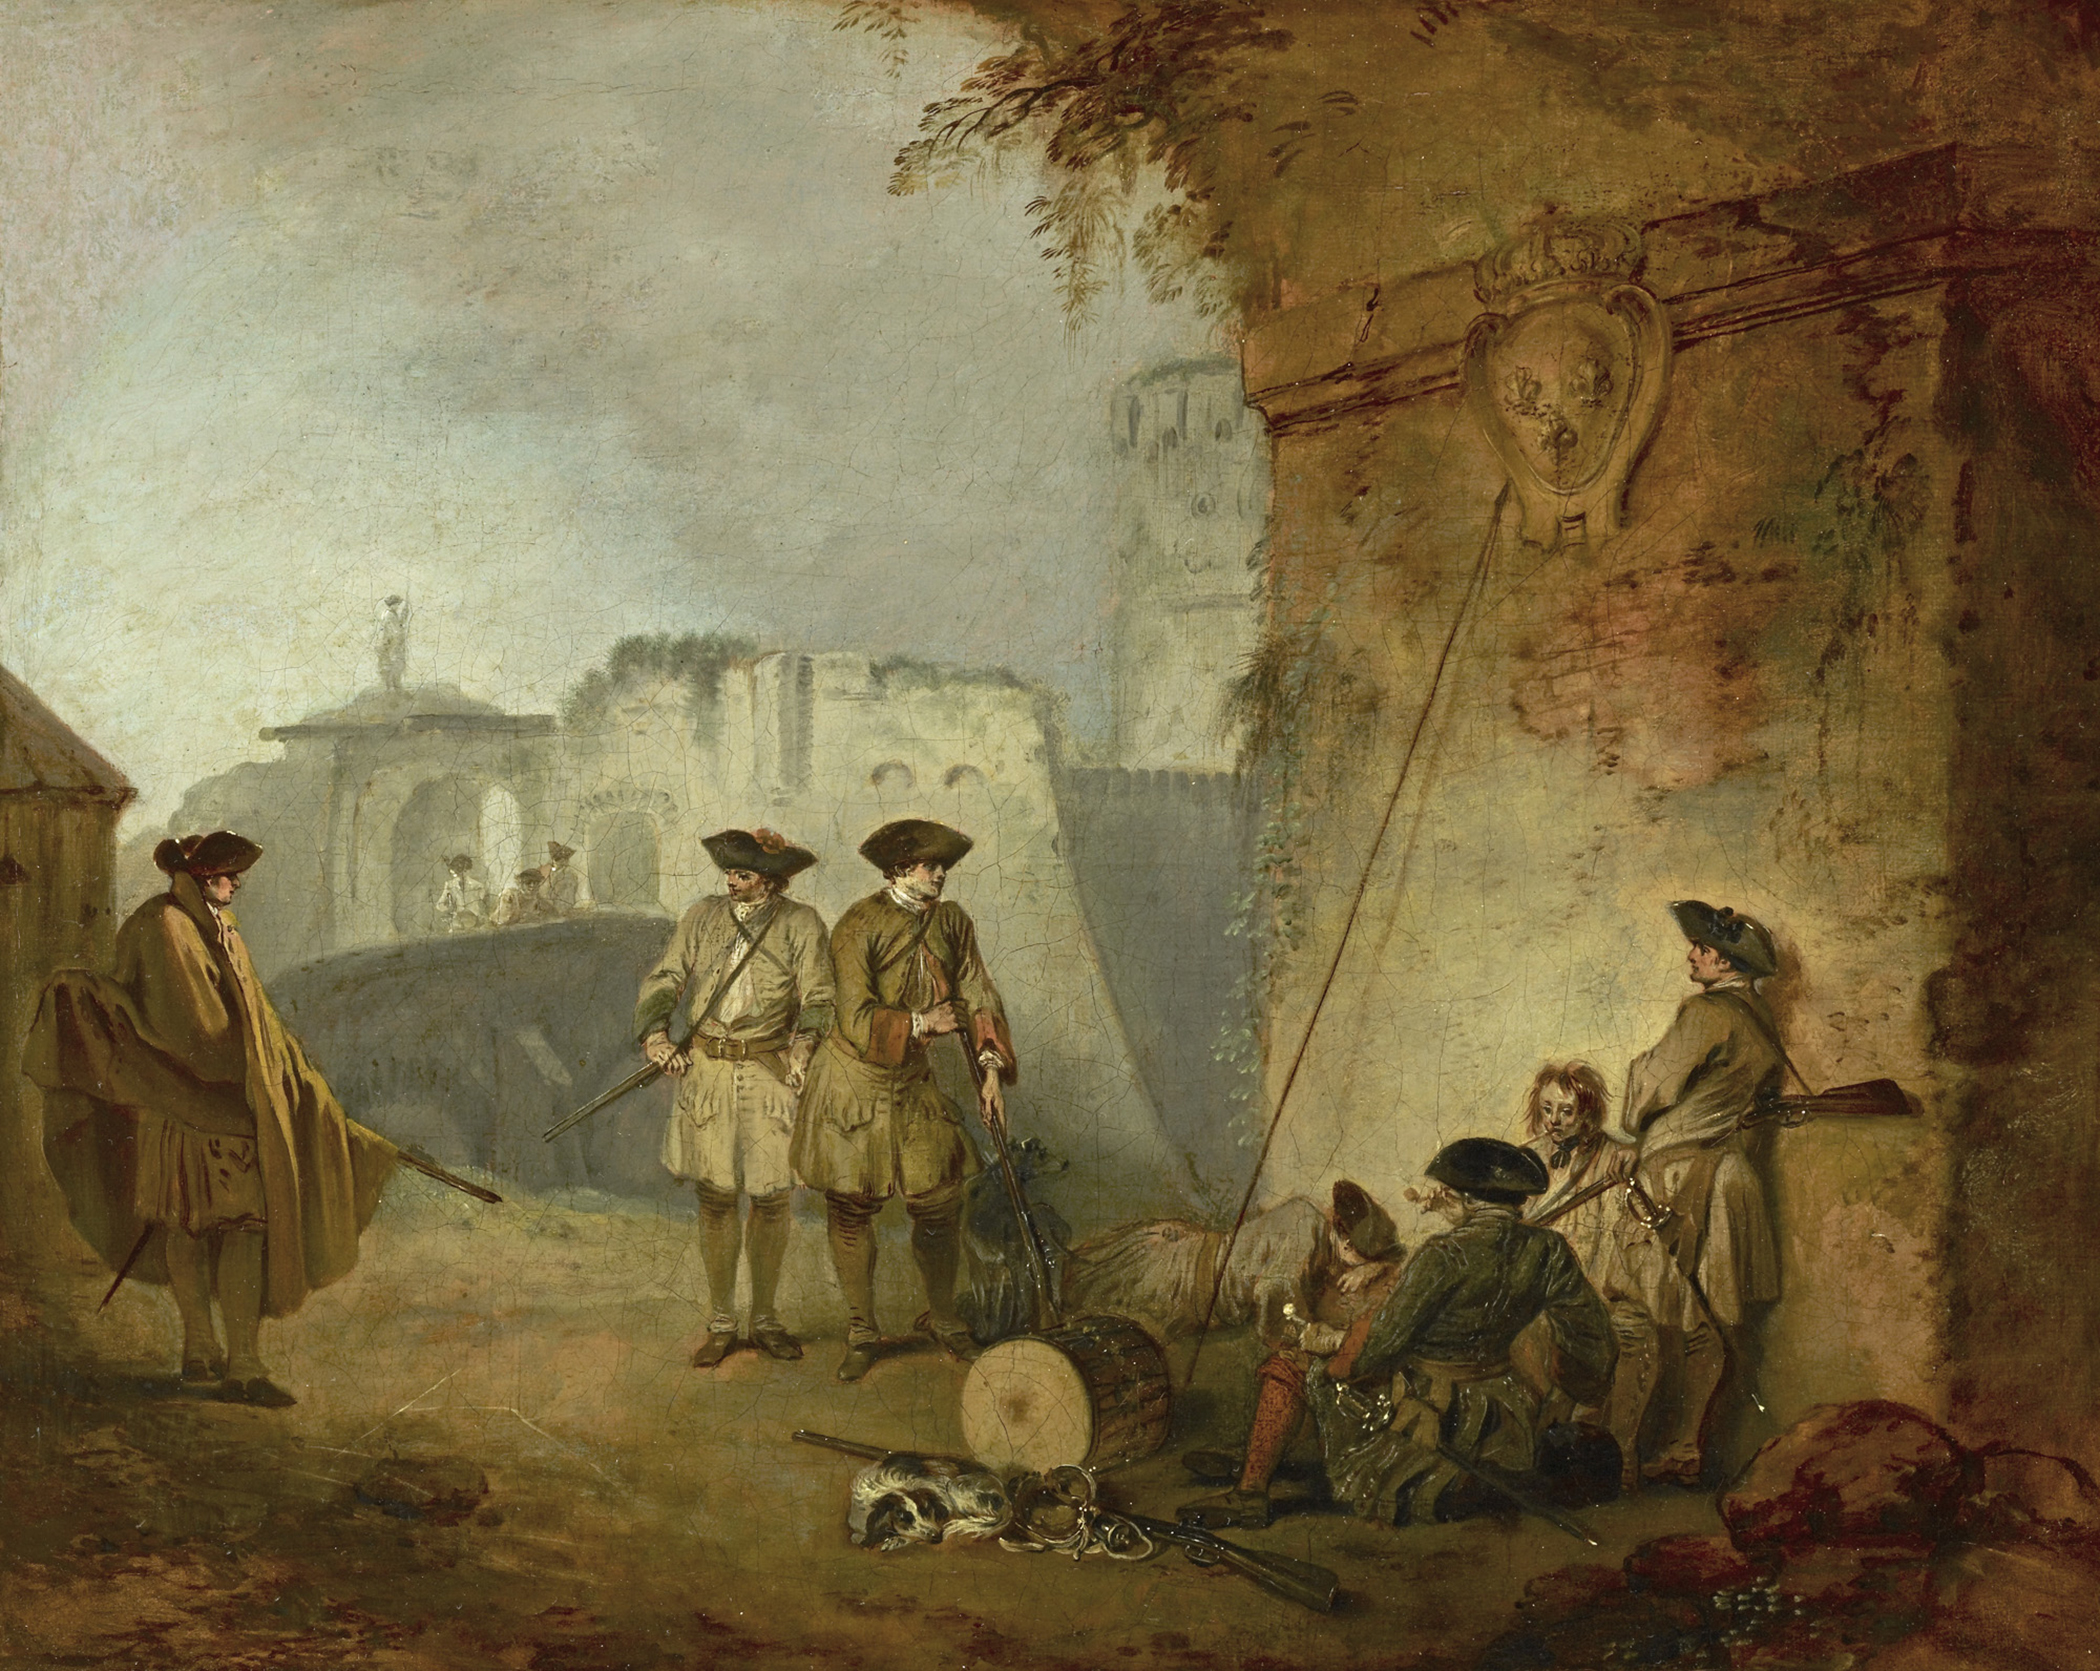 """""""The Portal of Calenciennes"""" by Jean-Antoine Watteau from the upcoming exhibition, """"Watteau's Soldiers: Scenes of Military Life in Eighteenth Century–France,"""" at The Frick Collection"""